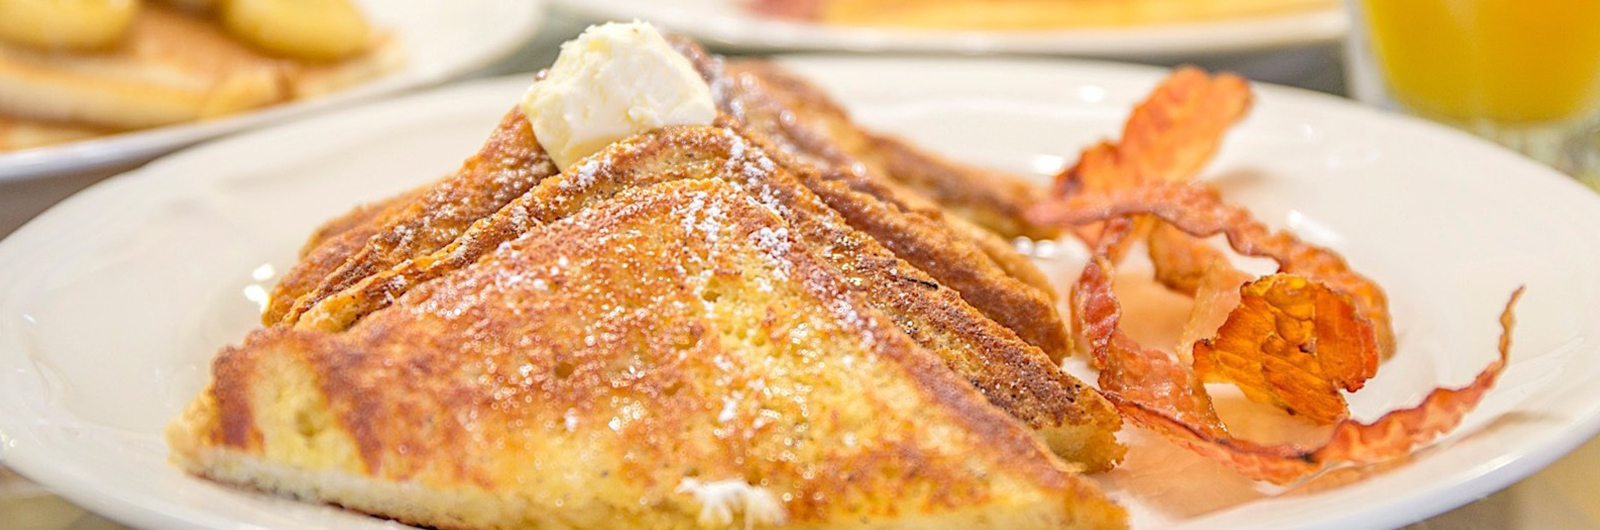 French toast with bacon for breakfast